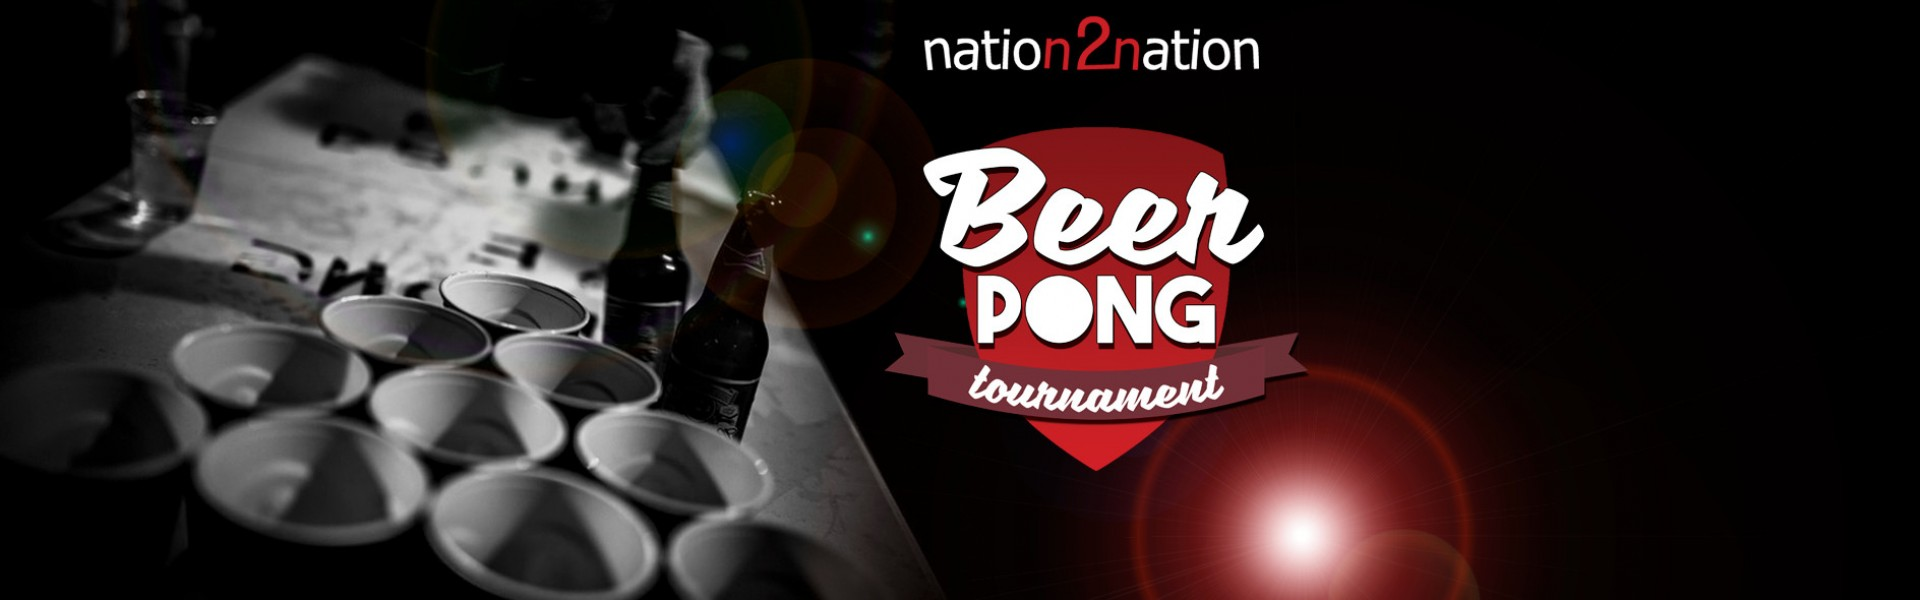 NATION2NATION – BEERPONG